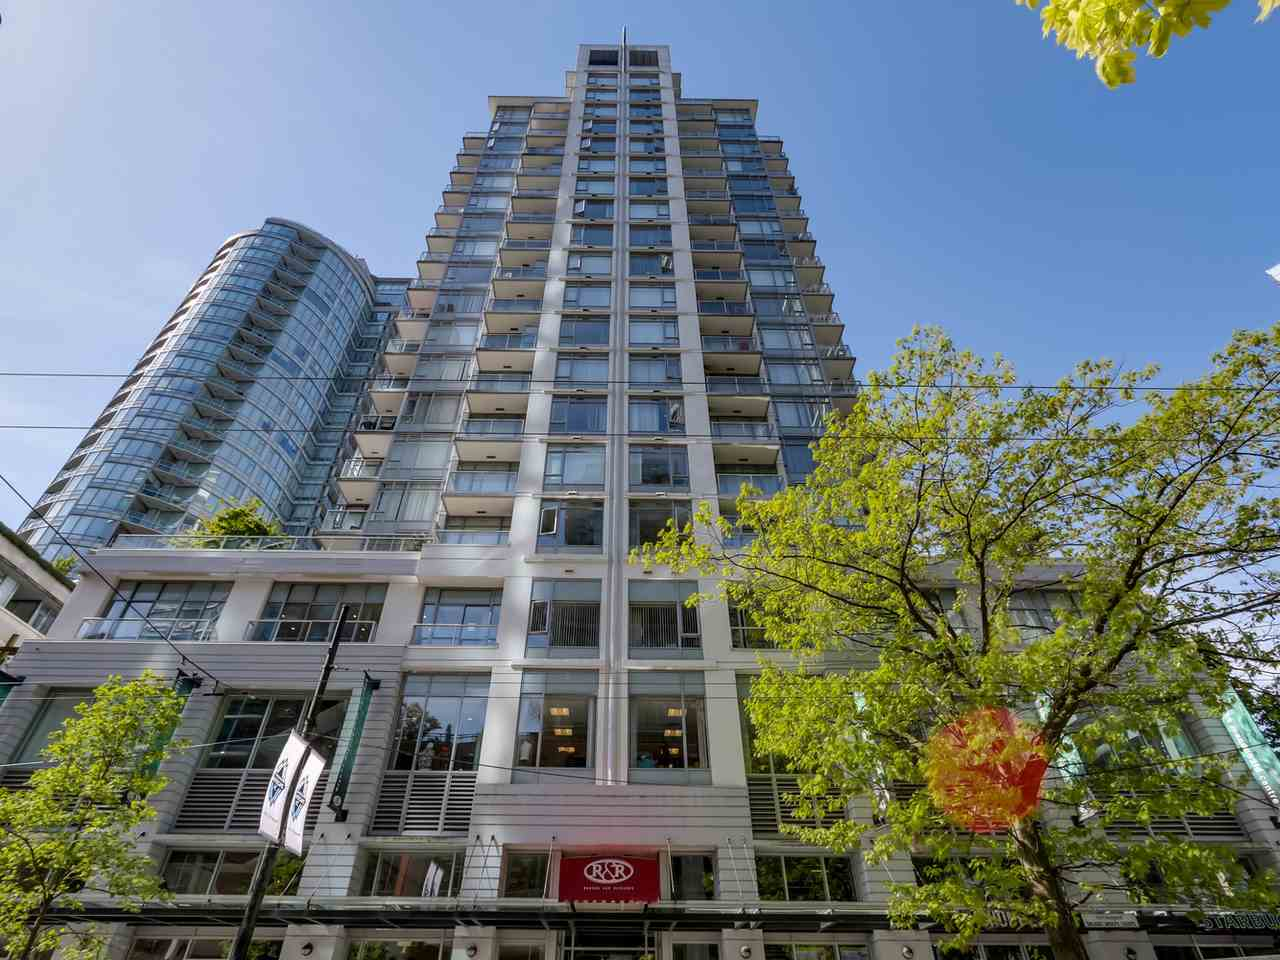 Main Photo: 1101 480 ROBSON Street in Vancouver: Downtown VW Condo for sale (Vancouver West)  : MLS® # R2059740